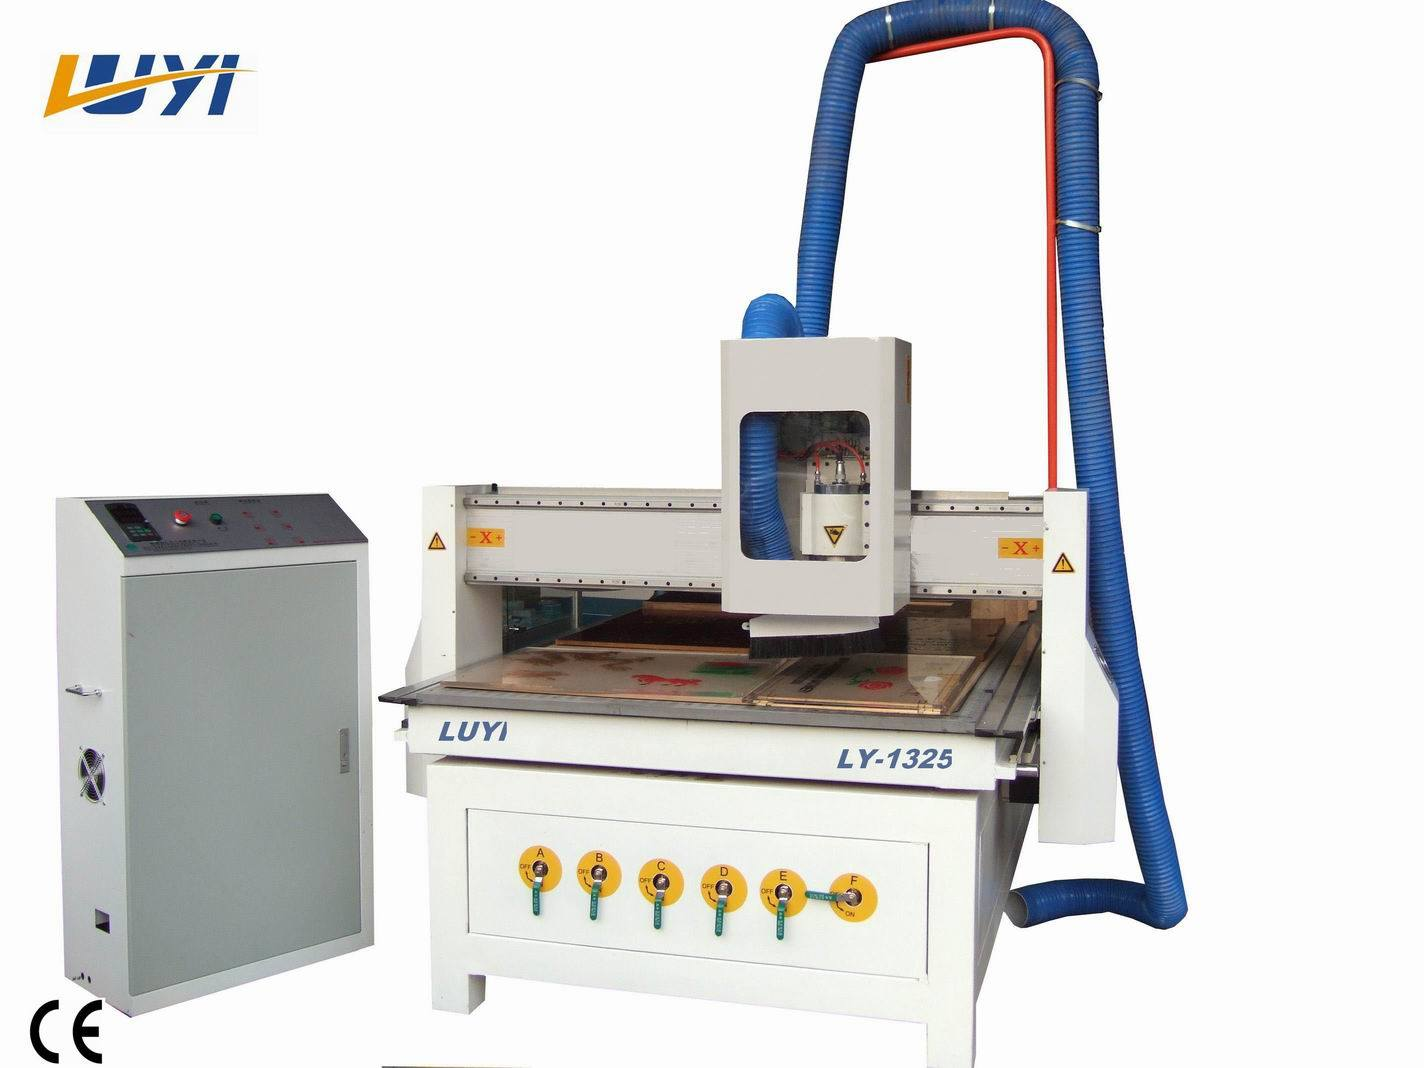 Fe Guide Building  Woodworking machinery cabinet makers